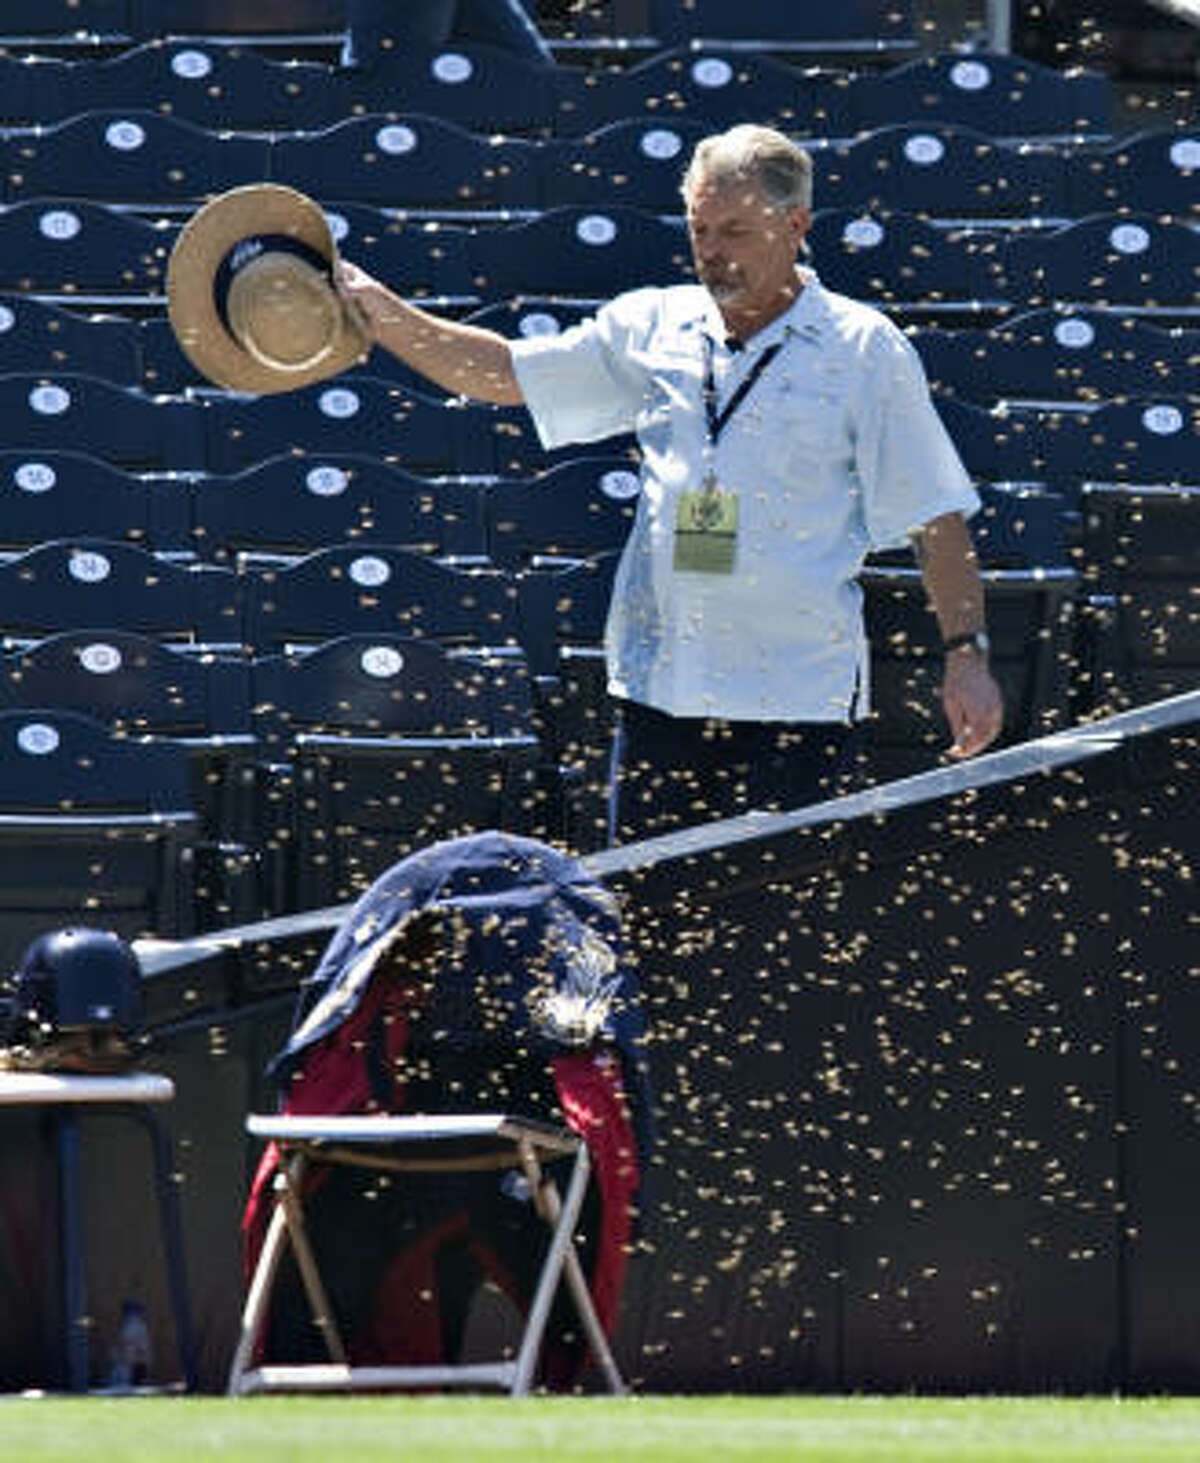 An unidentified usher tries to move a swarm of bees as they cover a chair in left field.